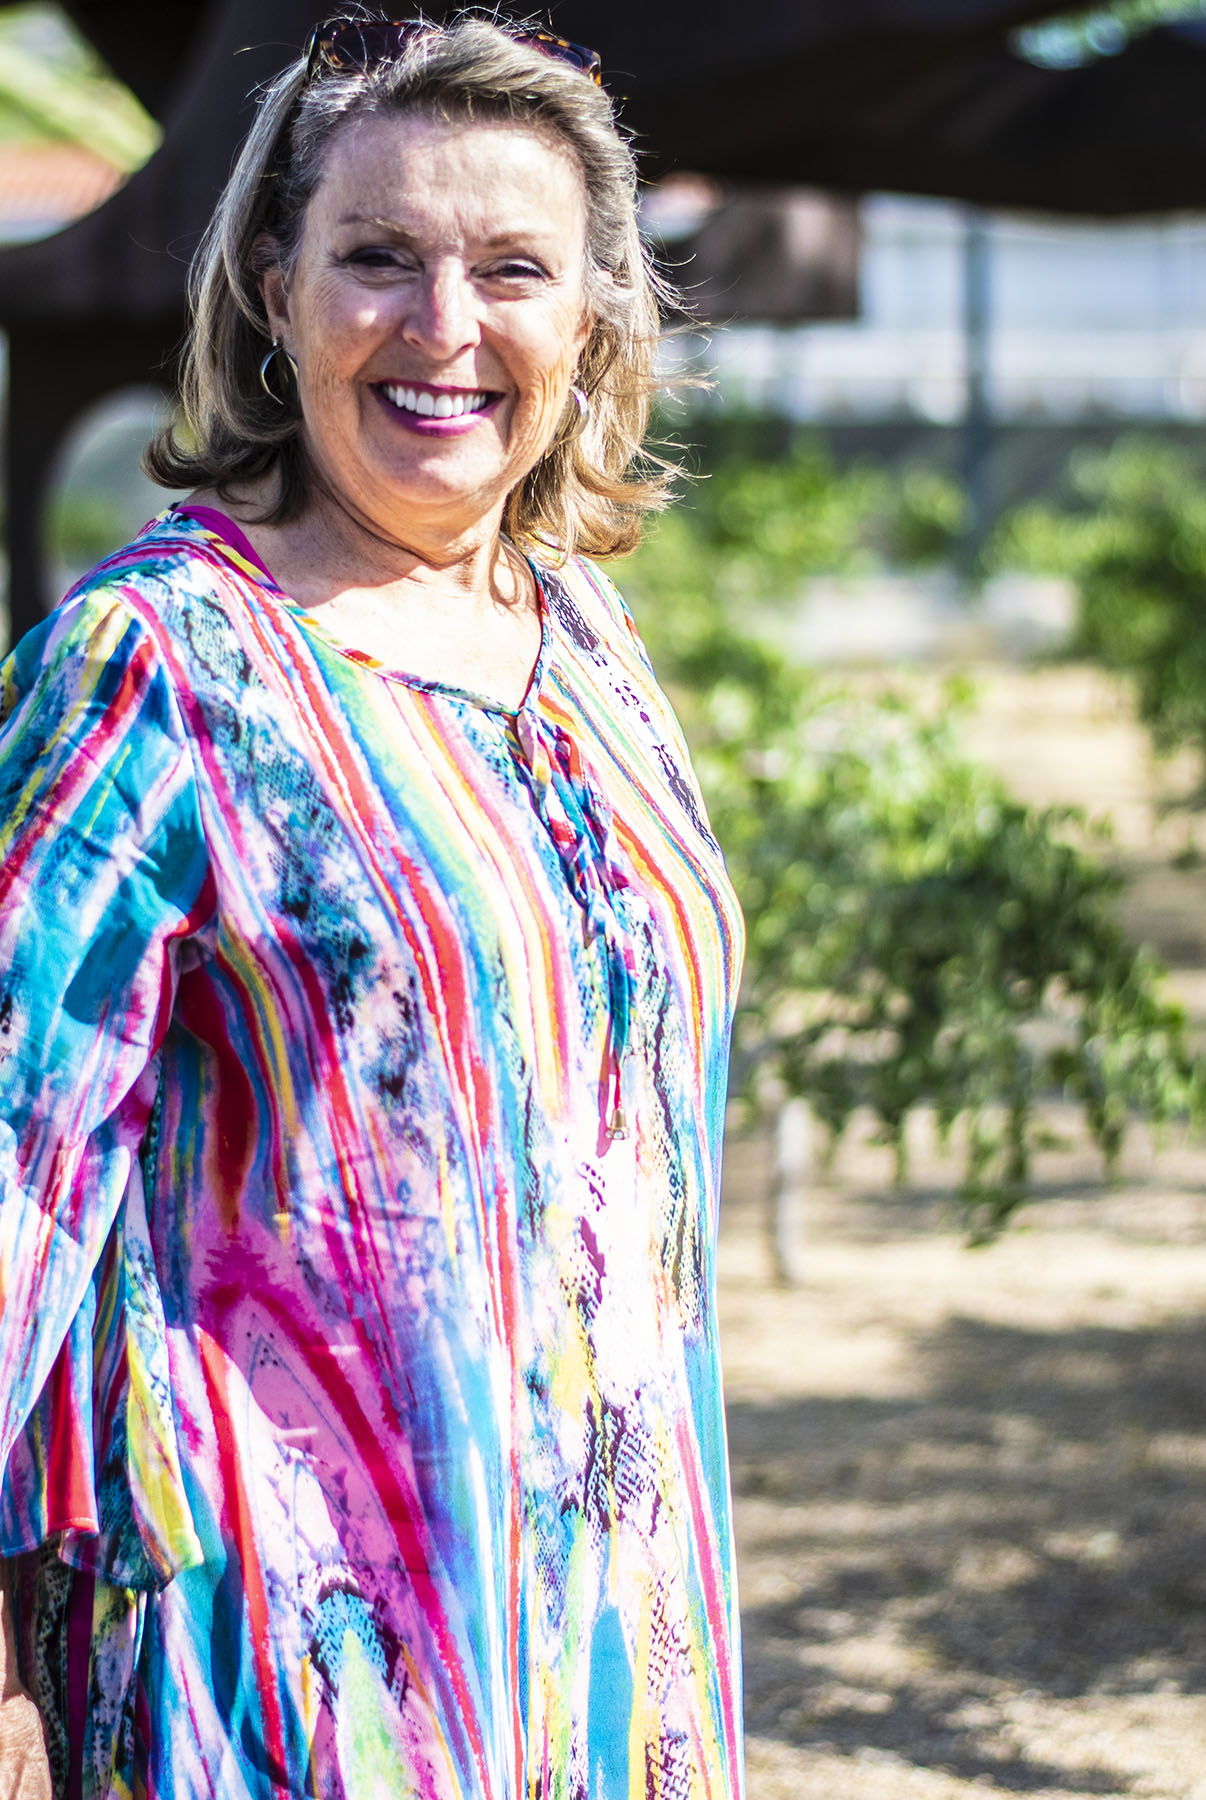 Colorful Styling with Tunics and Pants